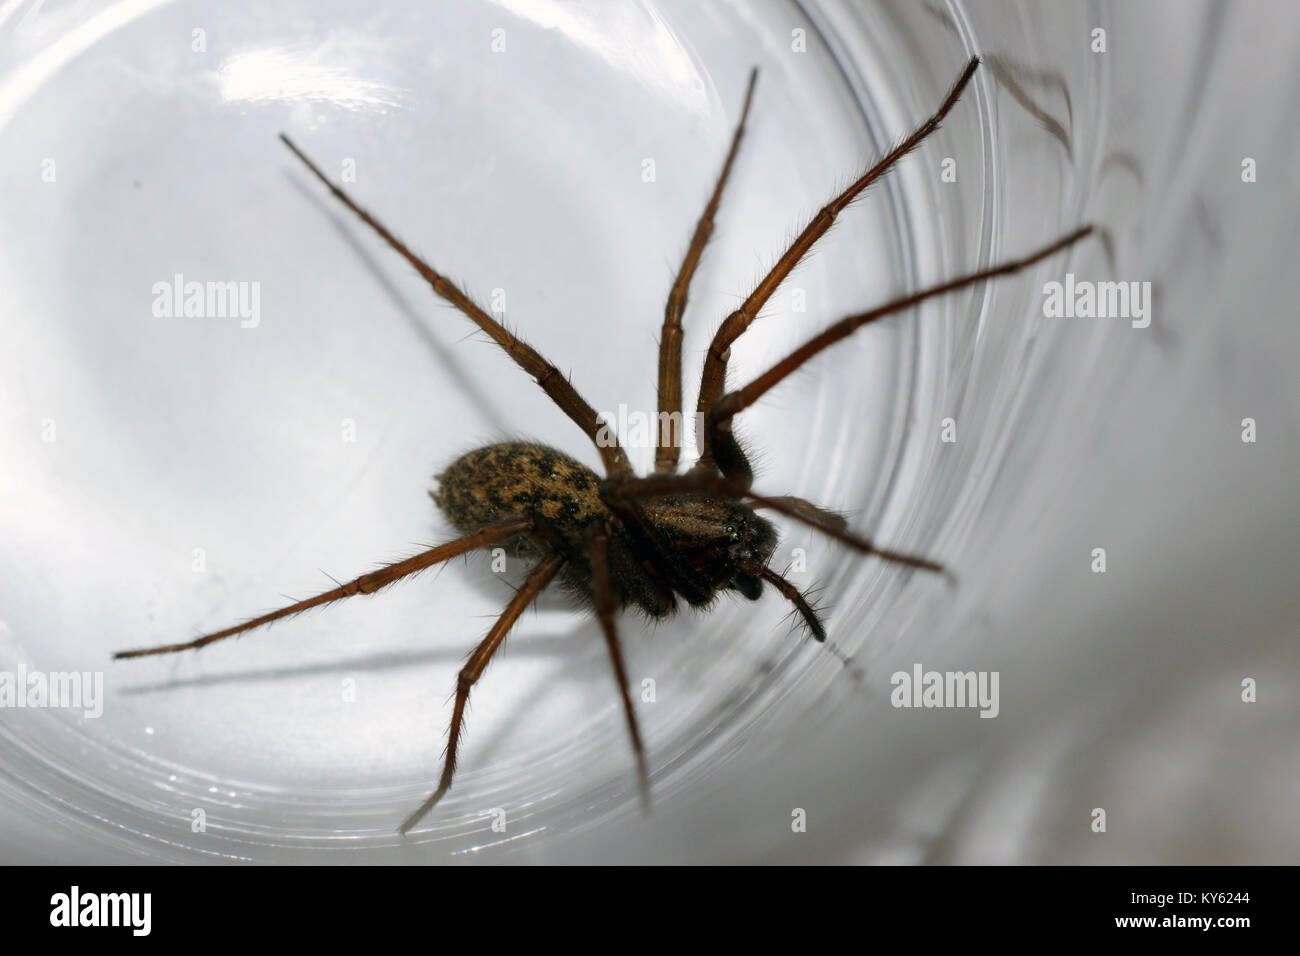 Close-up of a giant house spider (Eratigena atrica, formerly Tegenaria atrica) trapped in a glass tumbler - Stock Image